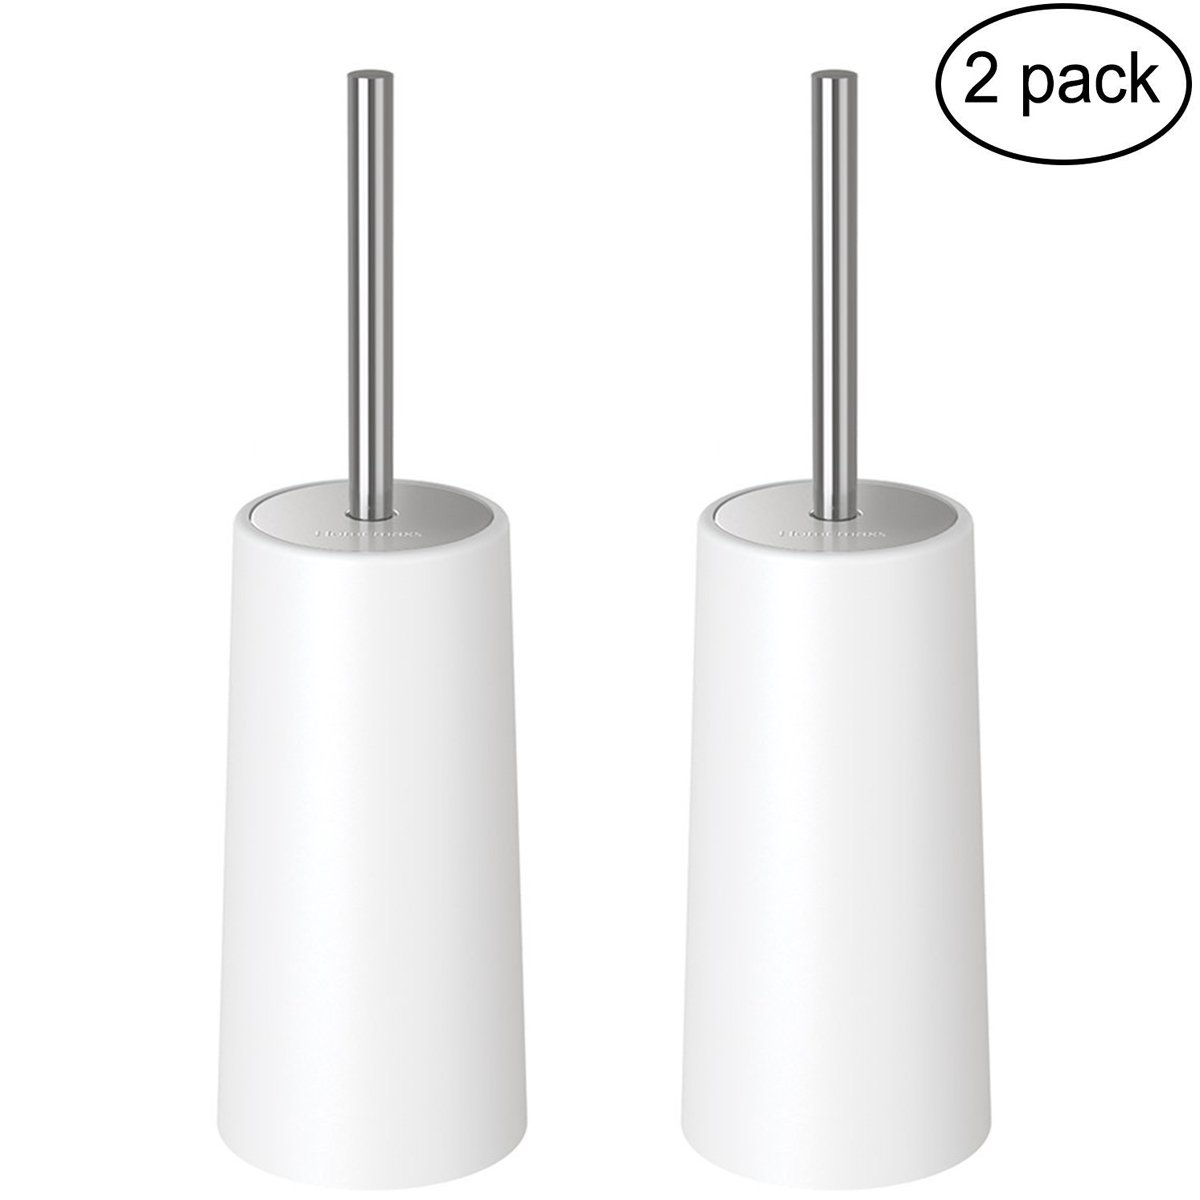 HOMEMAXS Toilet Brush with Holder - Extra Long Heavy Duty Stainless Steel Handle Bowl Scrubber Cleaner Set, 2 Pack – Ergonomic, Durable Shed-Free Scrubbing Bristles, Discreet Wand Stand by HOMEMAXS (Image #1)